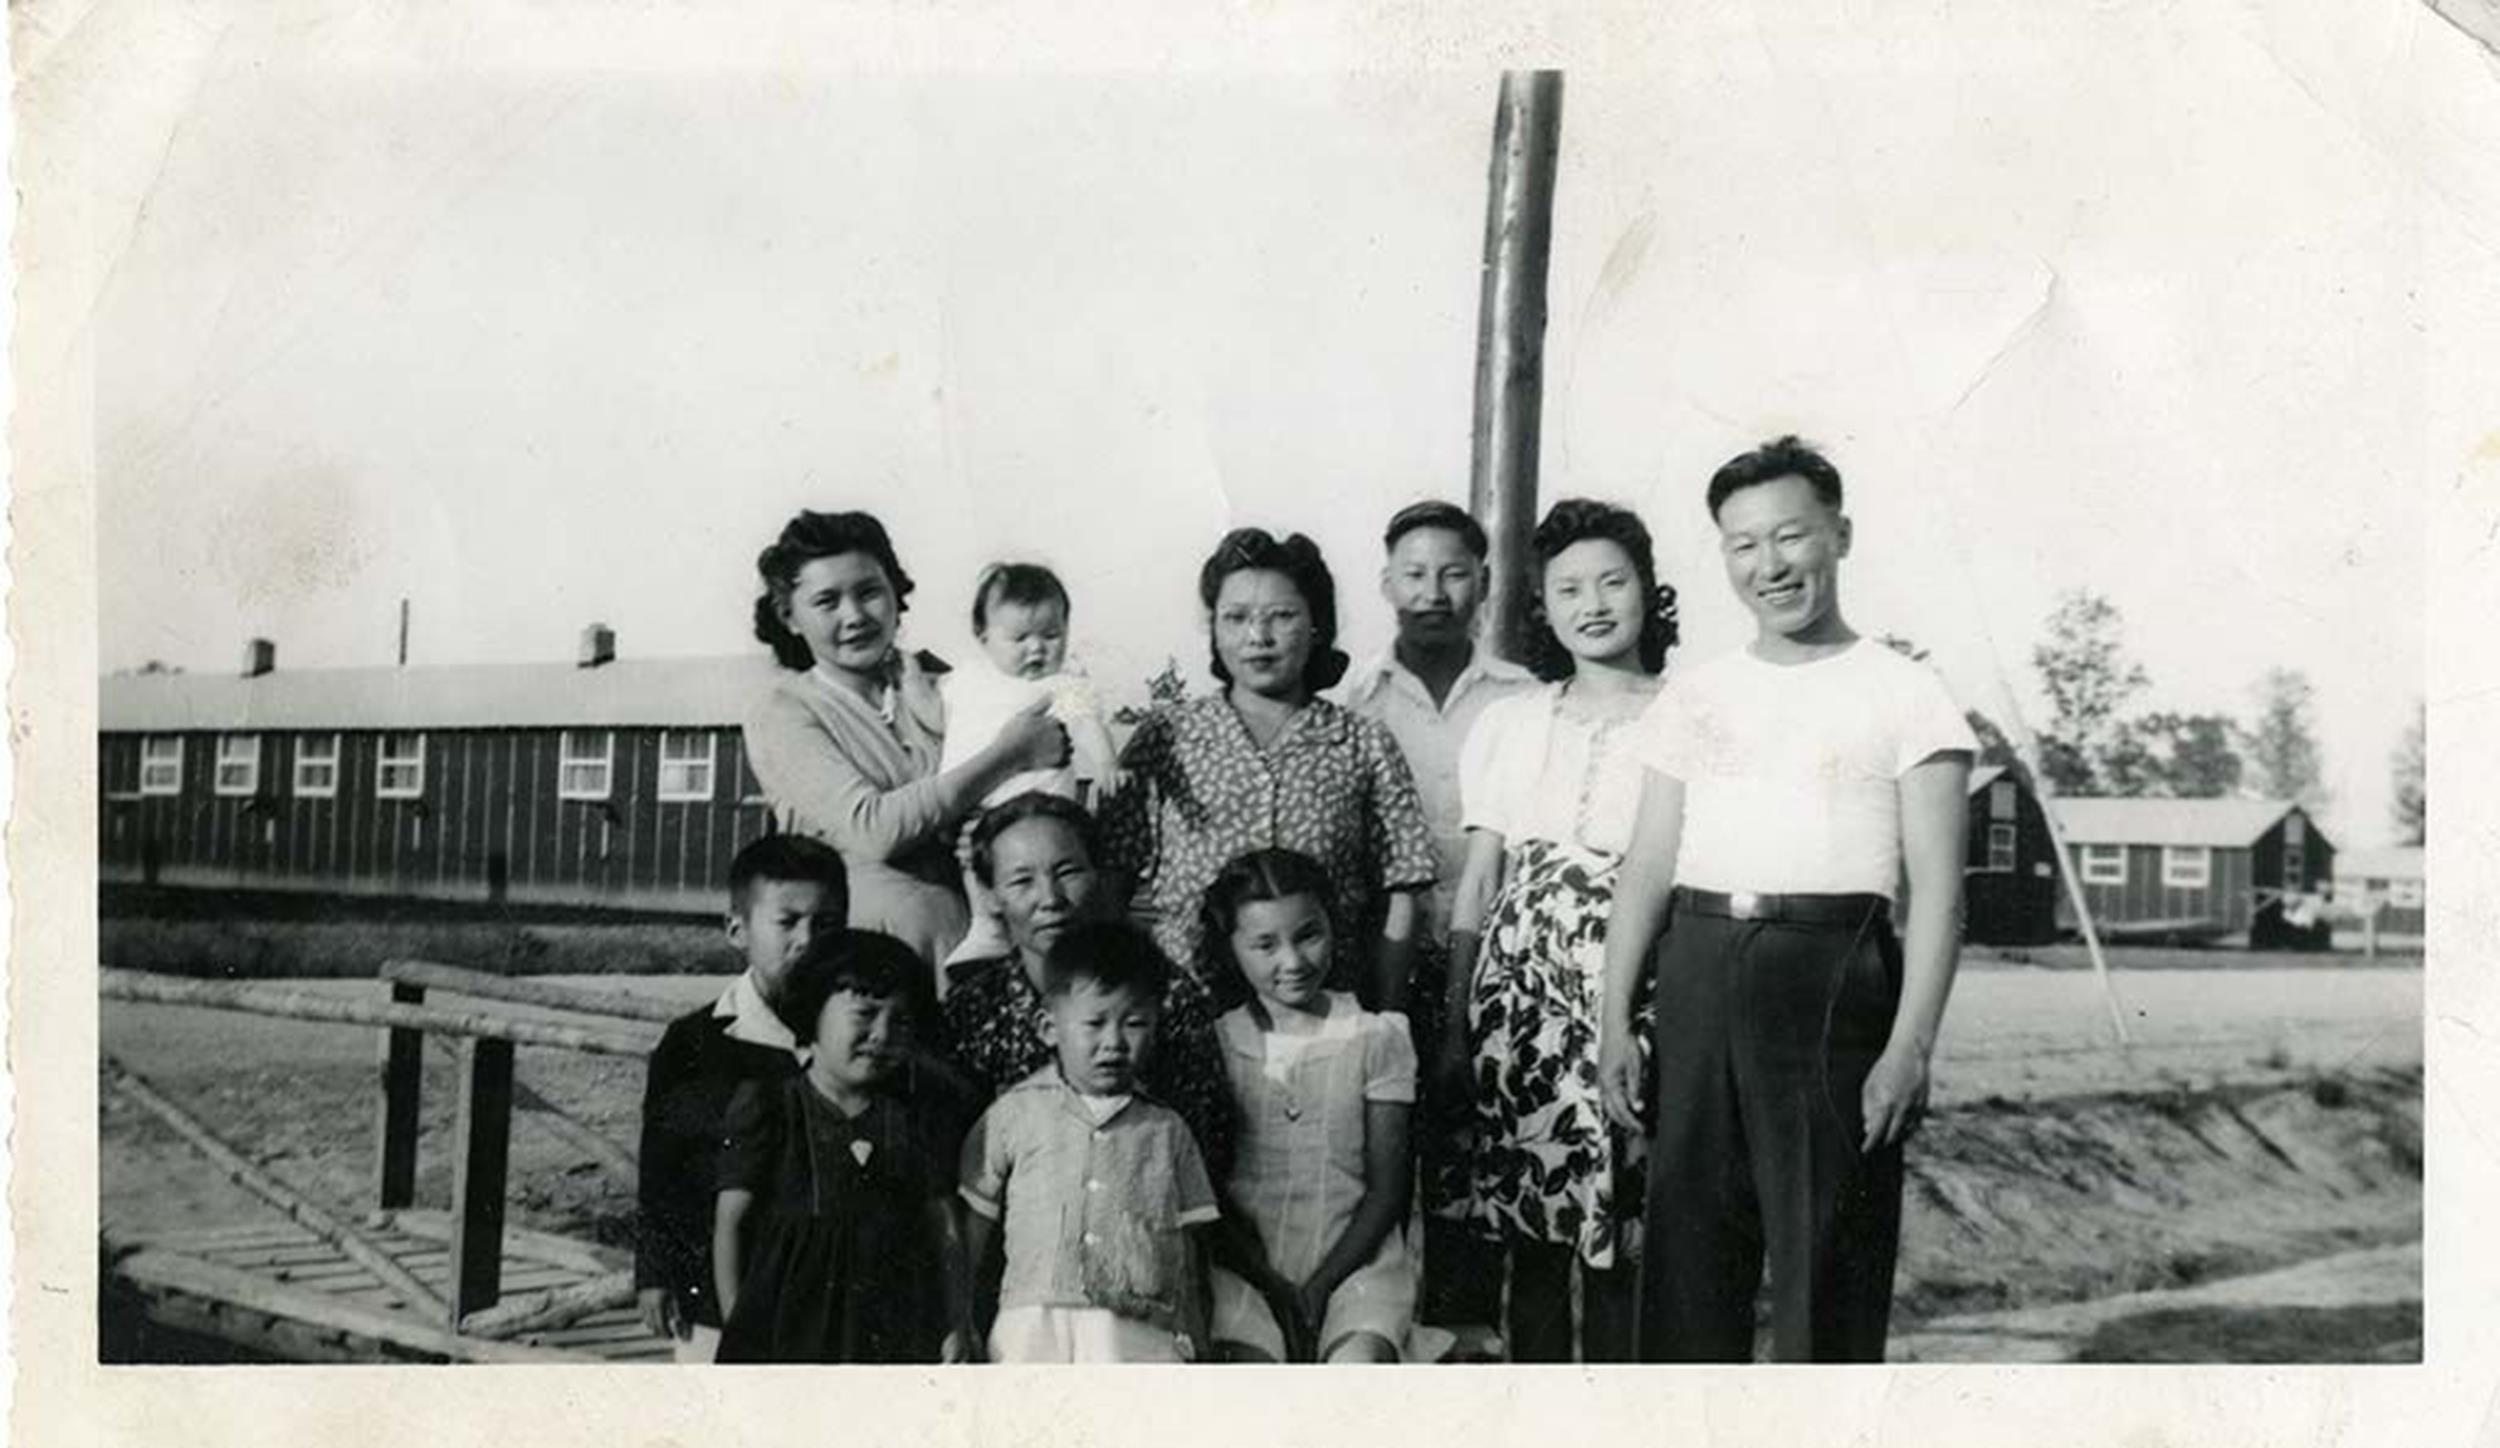 Lisa Hasegawa's family, detained at Japanese-American interment camps during World War II.